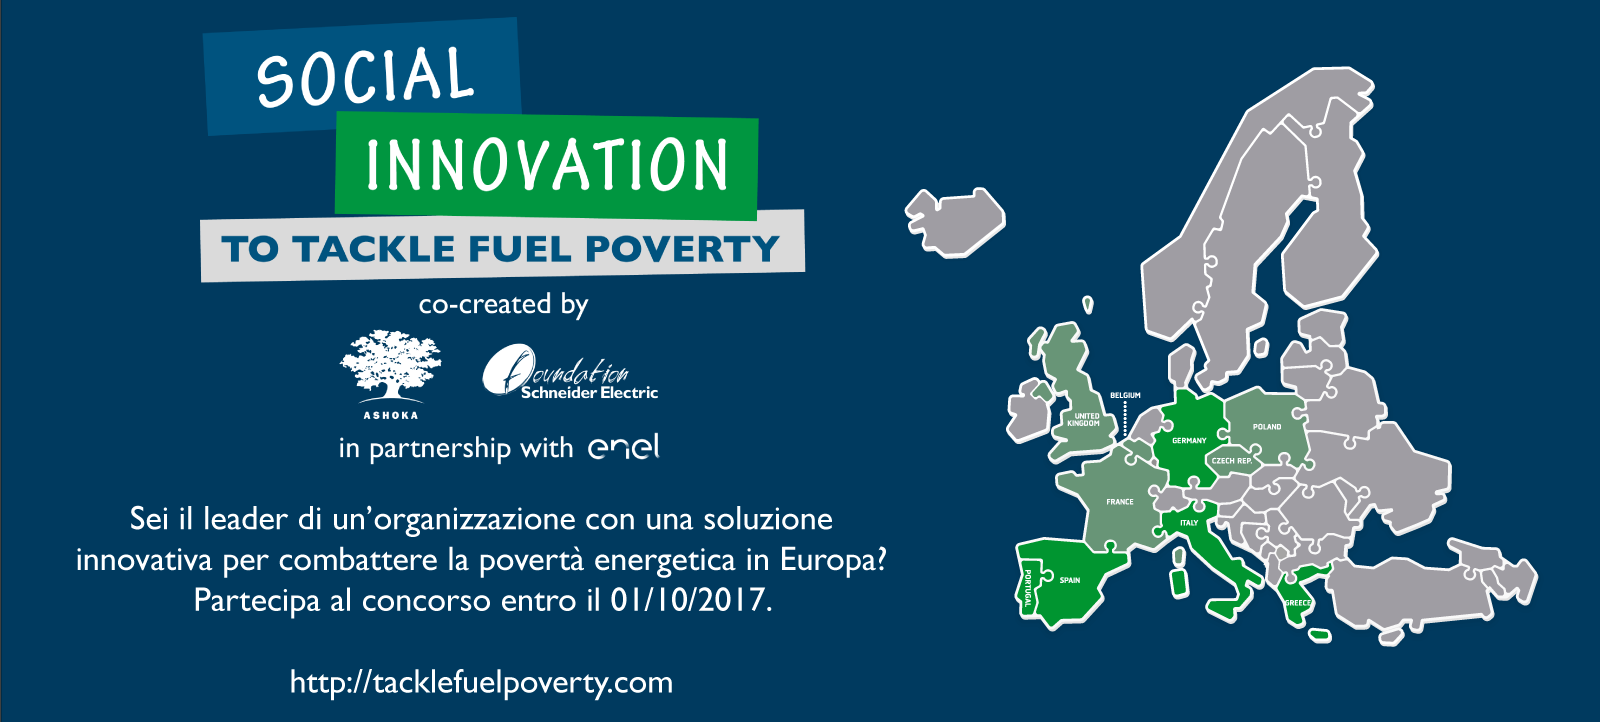 Social Innovation to Tackle Fuel Poverty soluzioni contro la povertà energetica